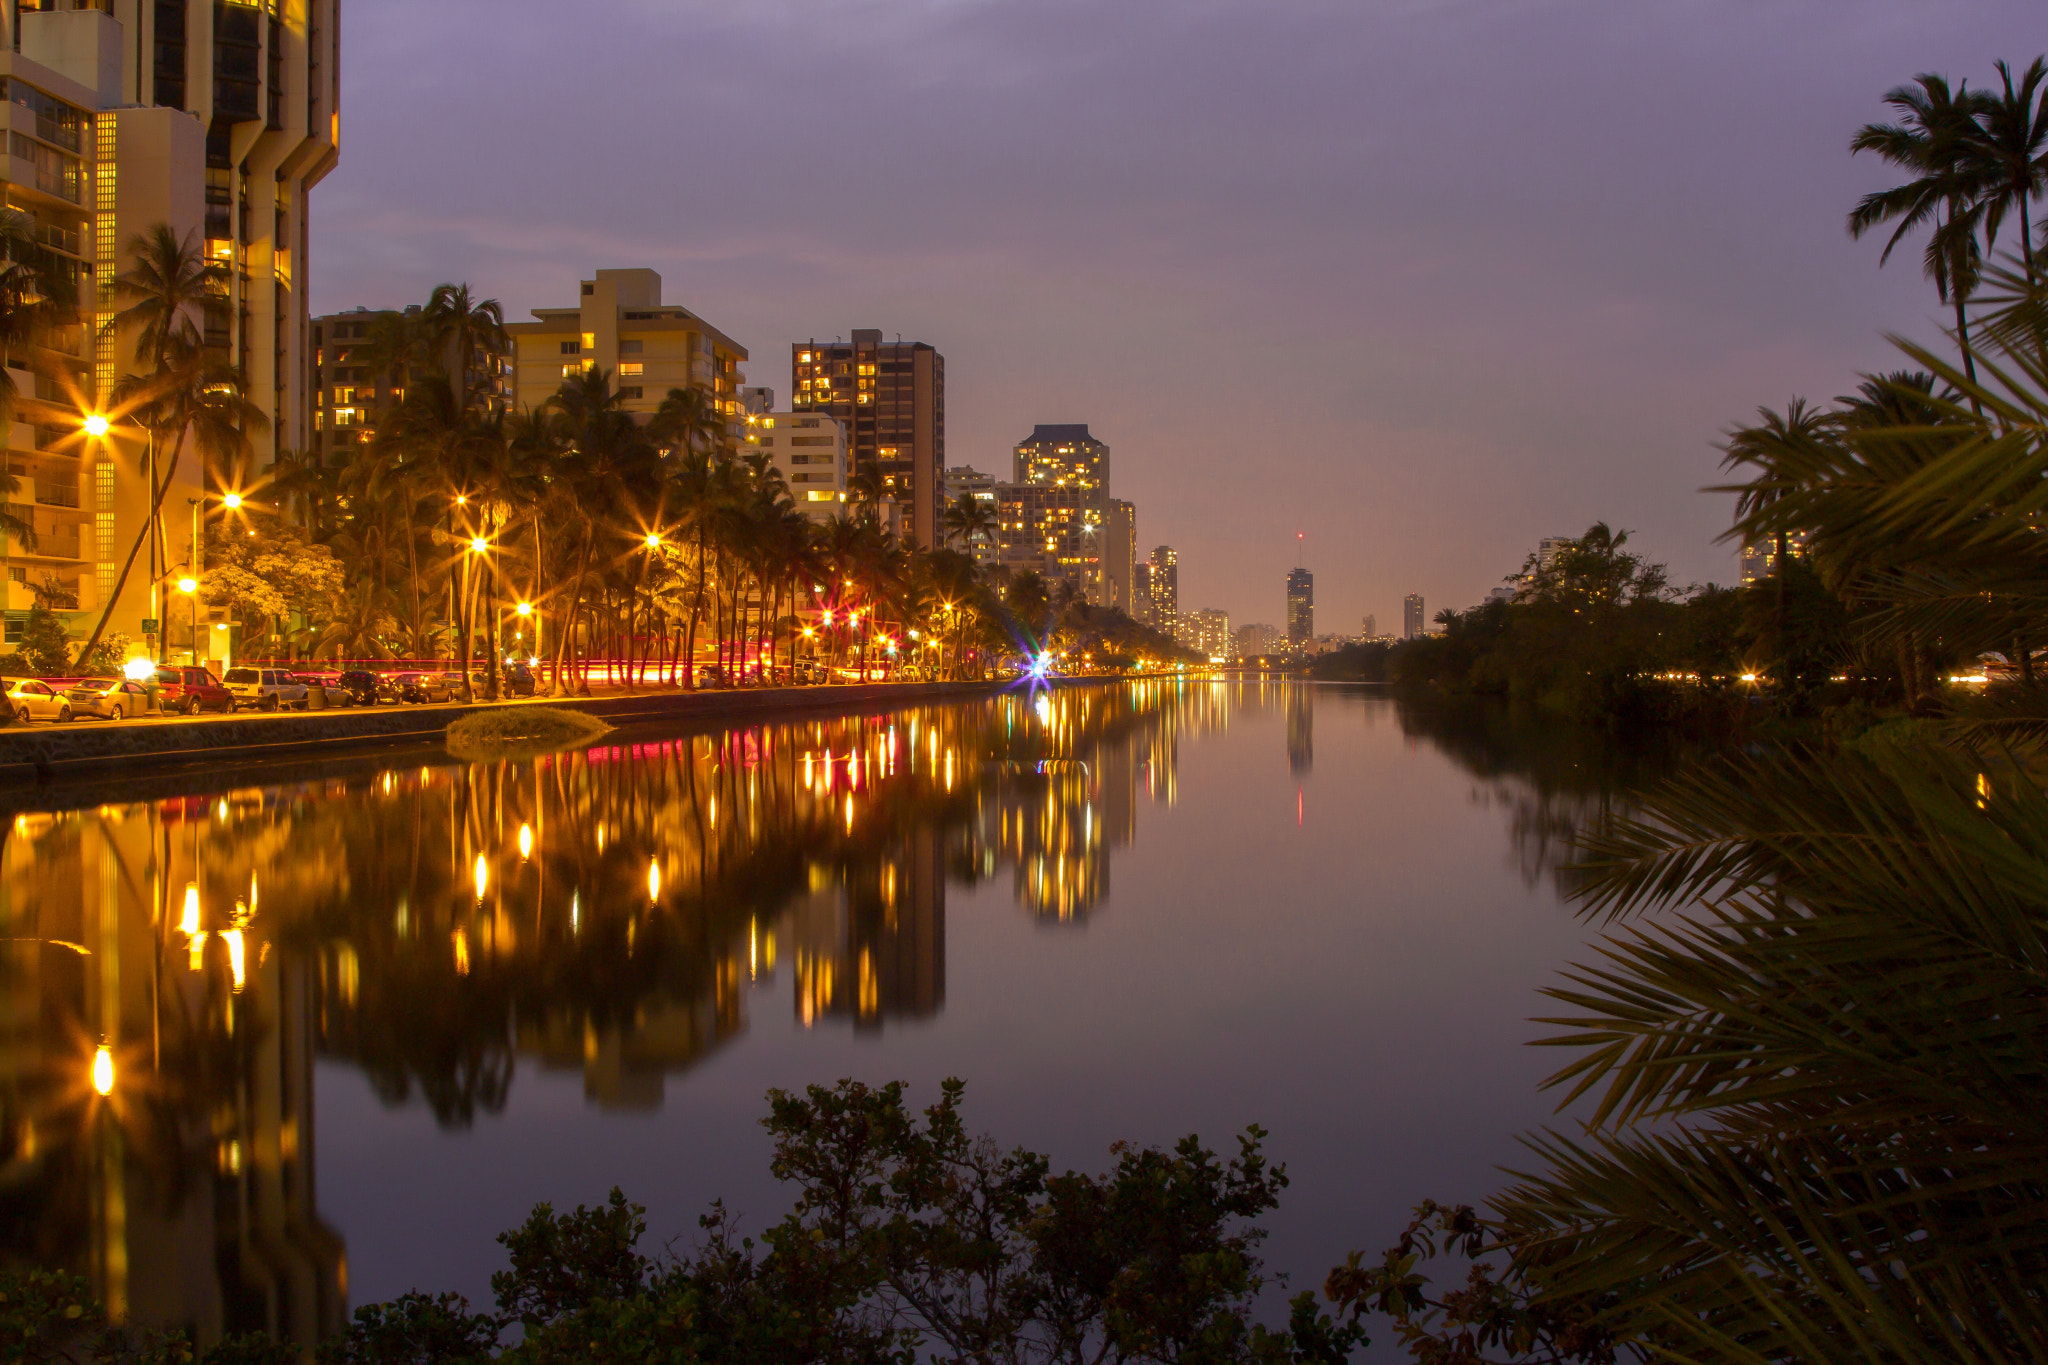 Photograph Ala Wai Canel in Honolulu by Tracy Clay on 500px